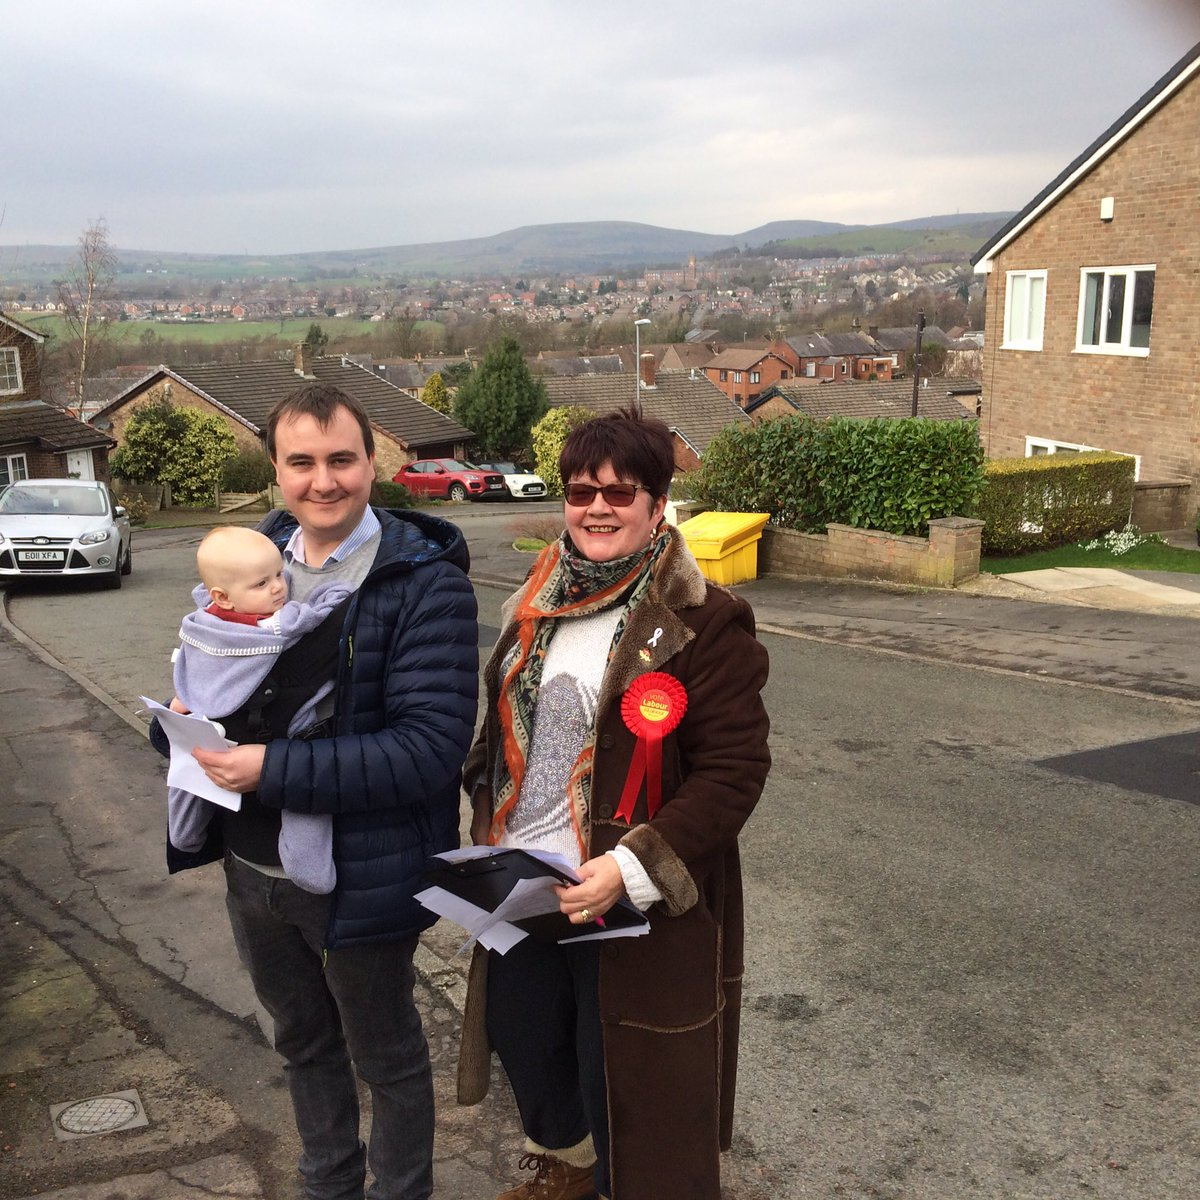 Start'em young! Nancy & @Tom_Besford out campaigning in Smithy Bridge, thanks to everyone who came out with us #voteLabour2019 @johnblundell993  @Liam_JF_ORourke @PTM101 @Rach31M @aasimrashid11 @cllriftikhar @Fre89yja @CouncillorNeilB @sara_rowbotham Shah Wazir & Shakil Ahmed